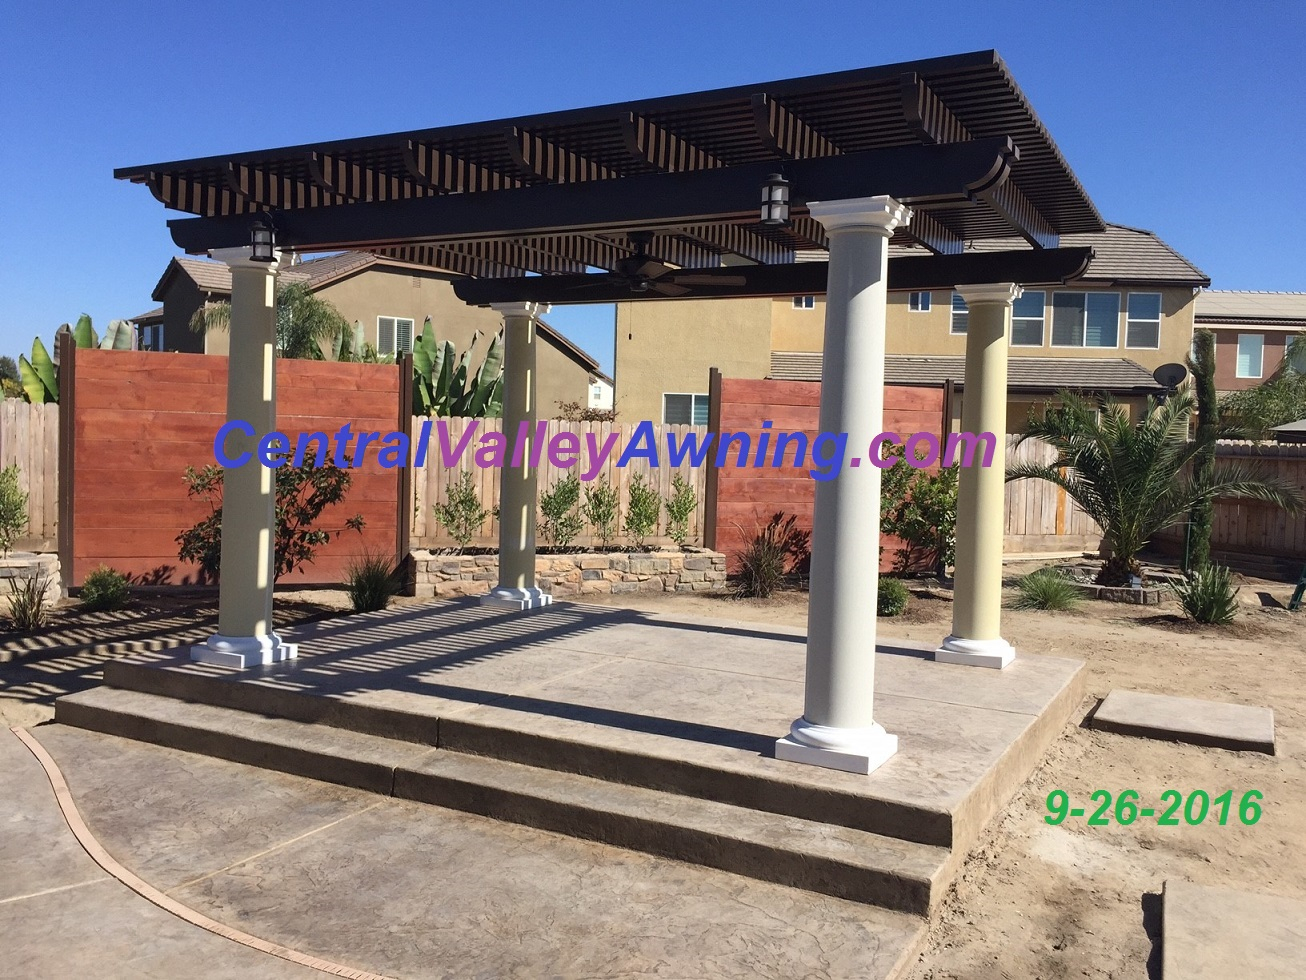 A 52' patio cover and the beam is perfectly straight. Look at the lights.  You can see the light's mounting plate on all the posts. - Home_CVA.html